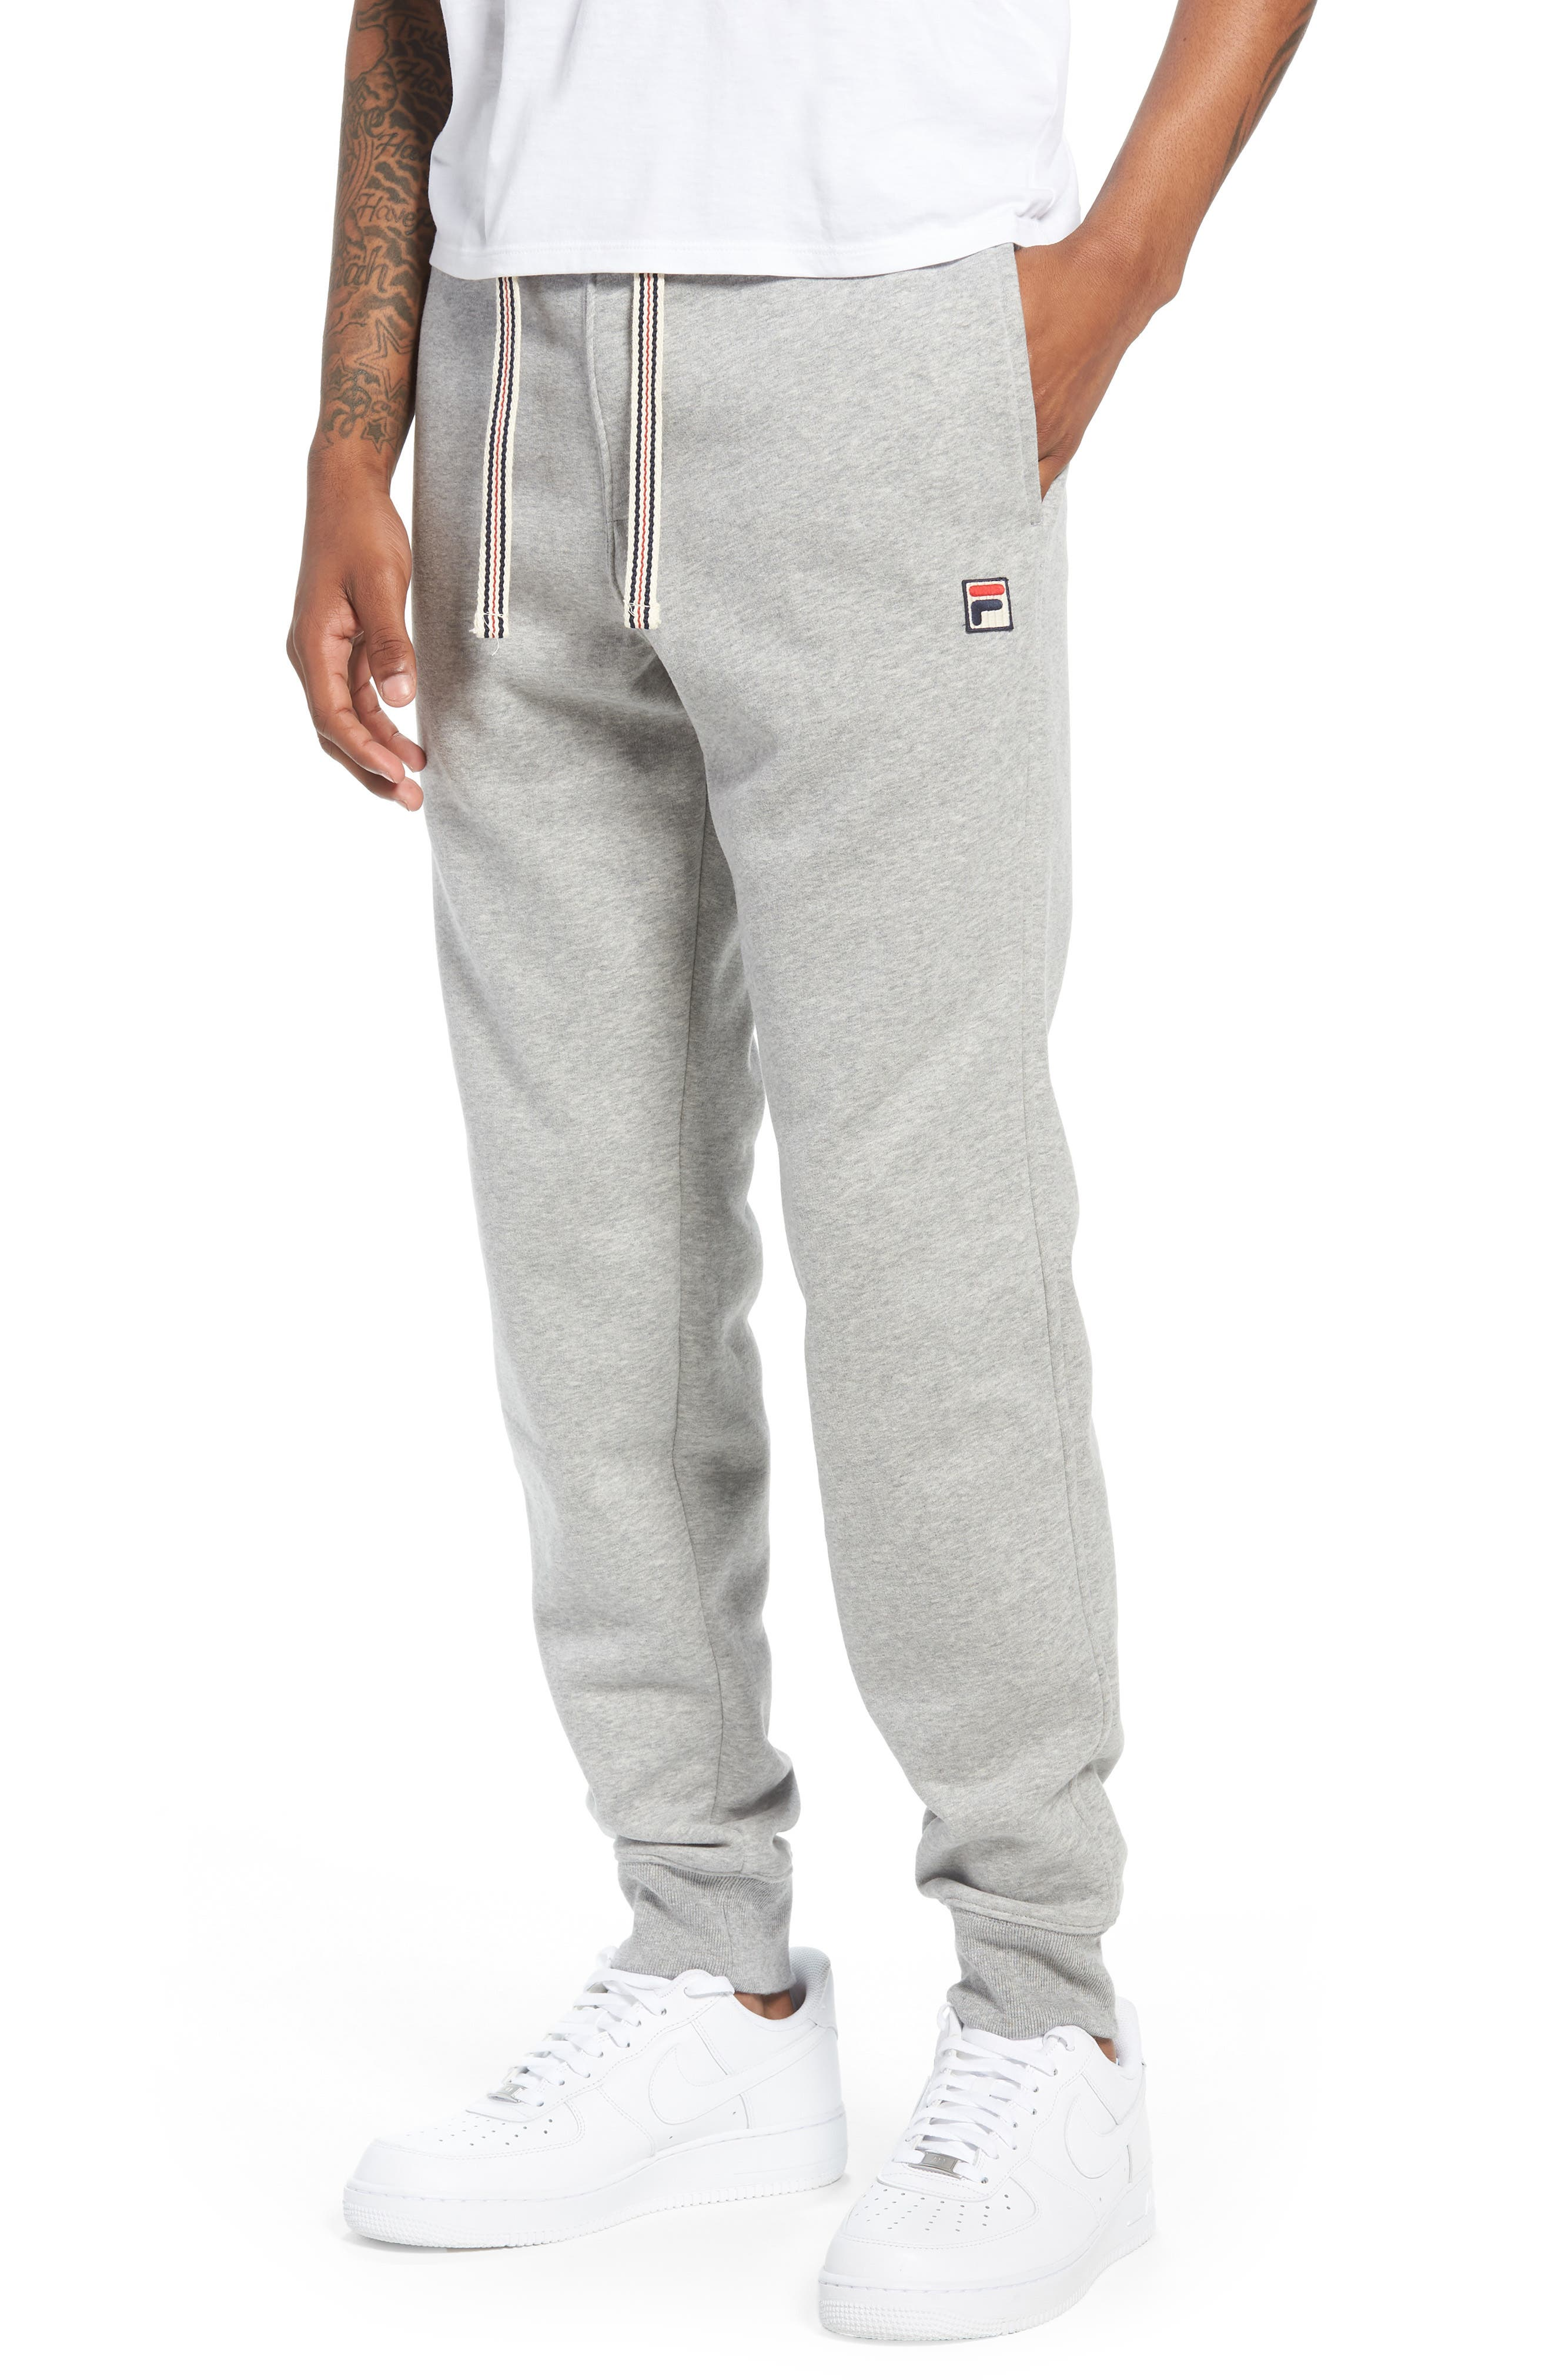 Jogger Pants,                             Main thumbnail 1, color,                             Heather Grey